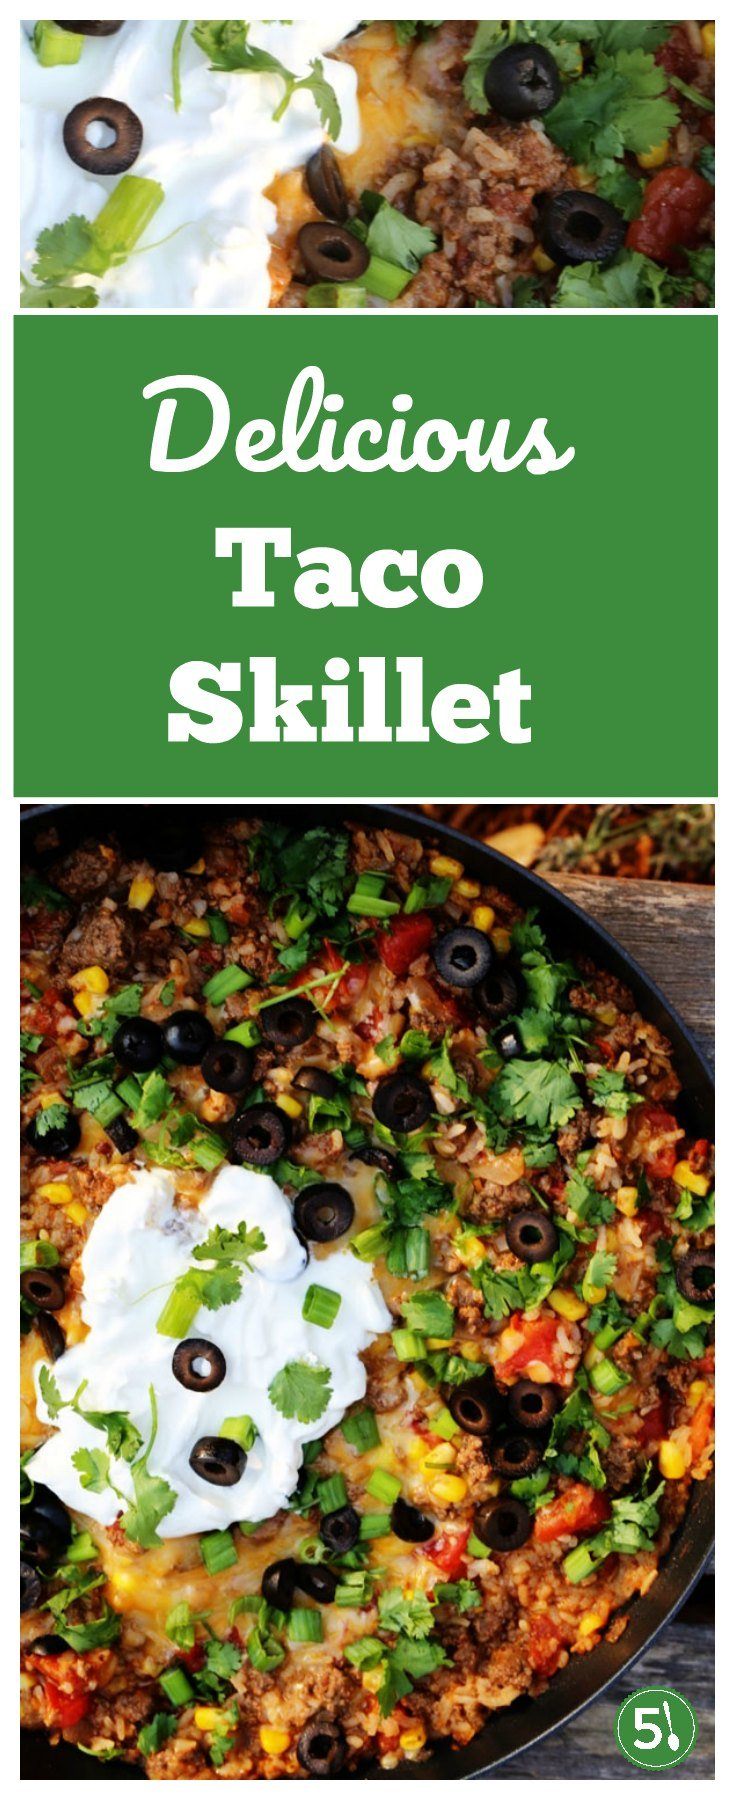 Ground beef taco skillet, full of protein and veggies, is a delicious and easy family dinner that everyone will enjoy.